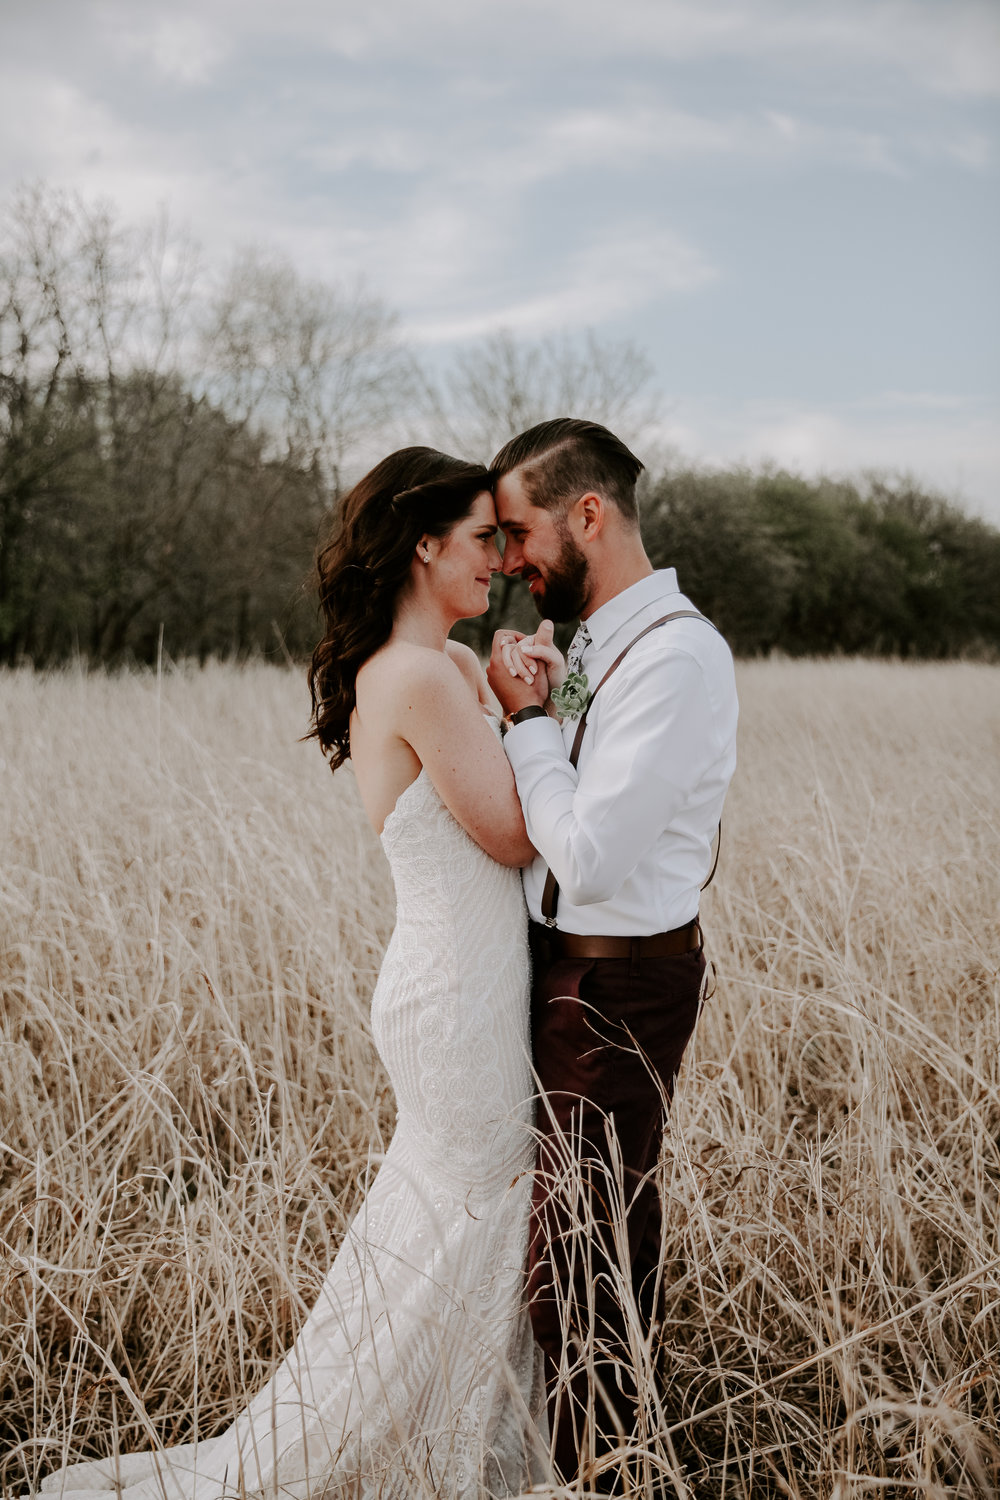 Brooke + Jacob - April 20th, 2018